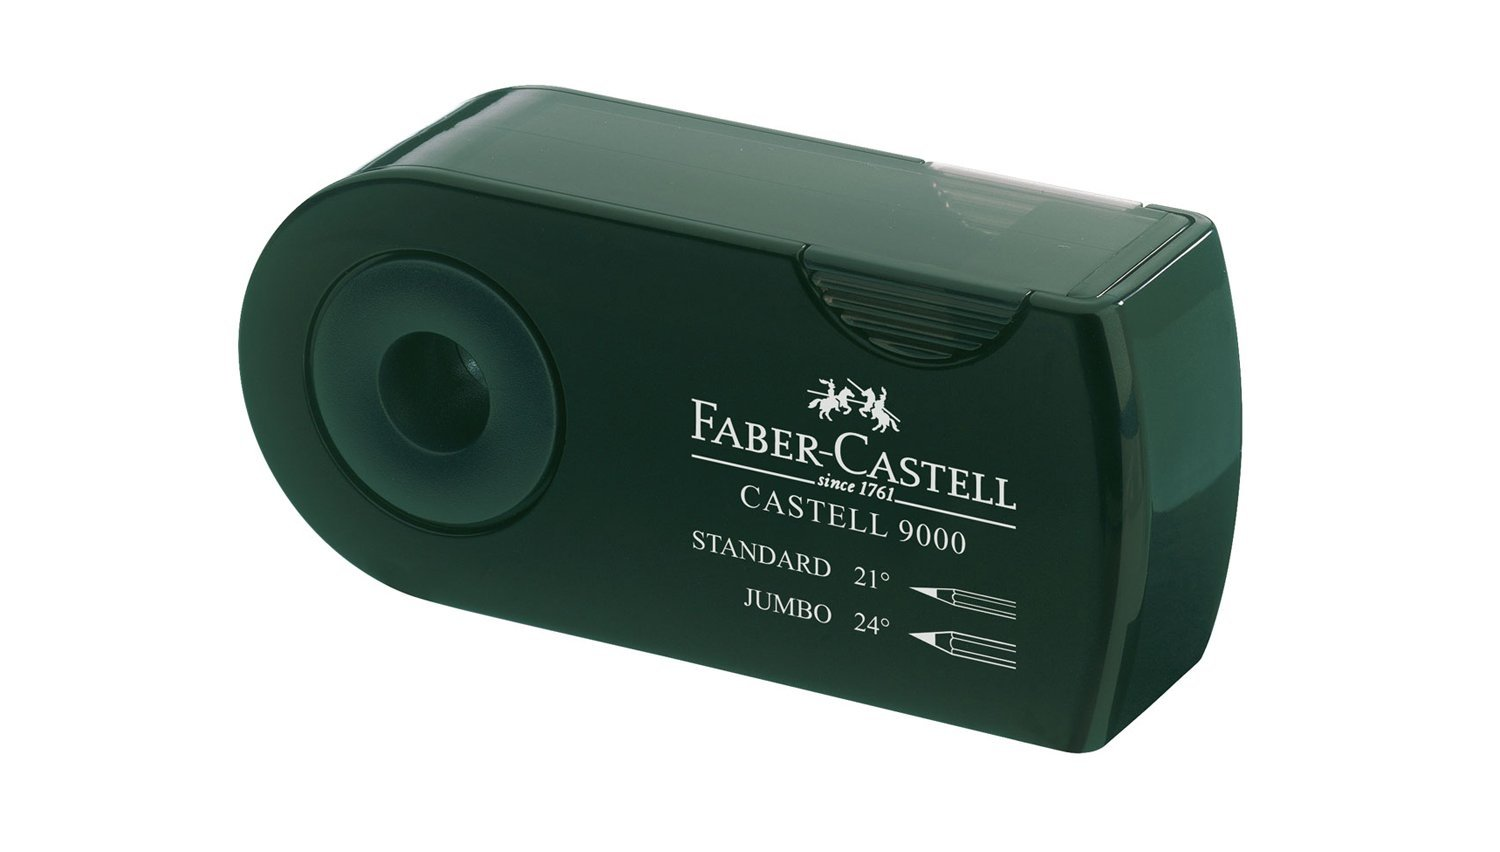 Faber-Castell F582800 DOUBLE HOLE SHARPENER GREEN reikos_0019522742AM_0001373